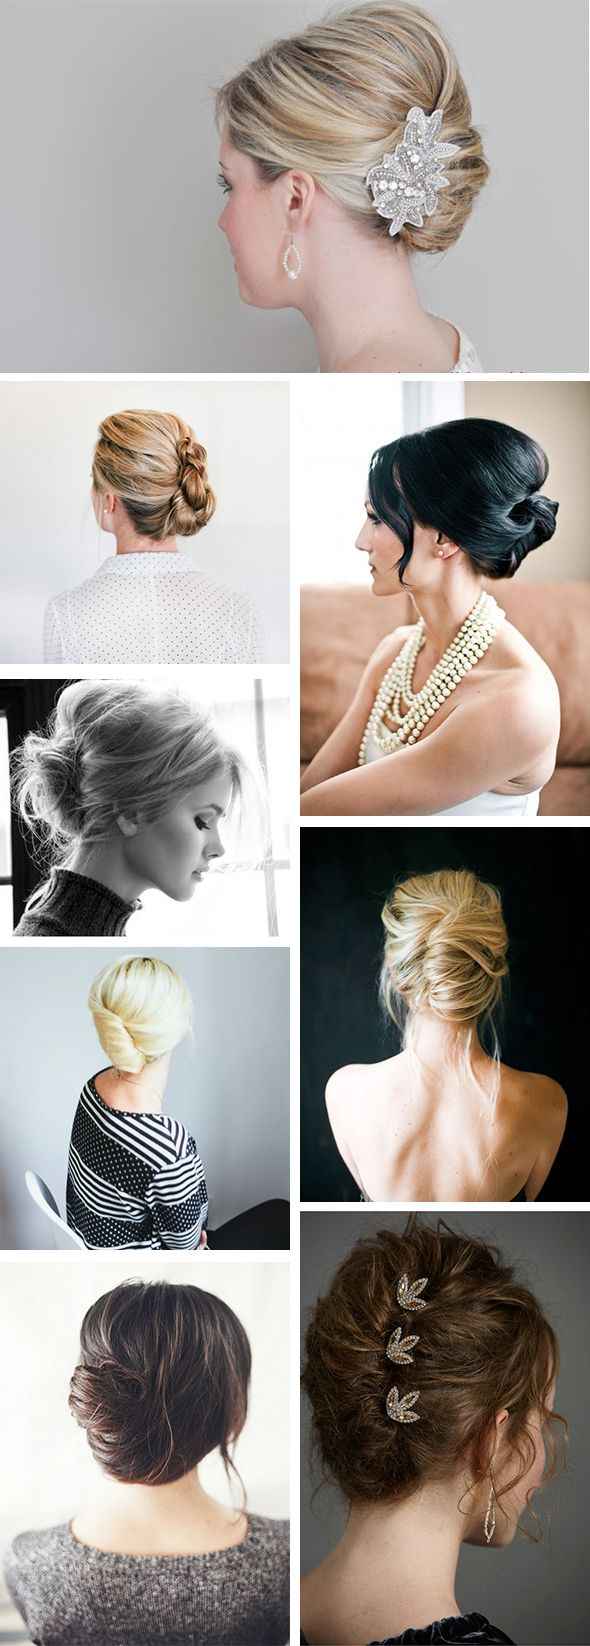 94 best hair style for the wedding images on pinterest